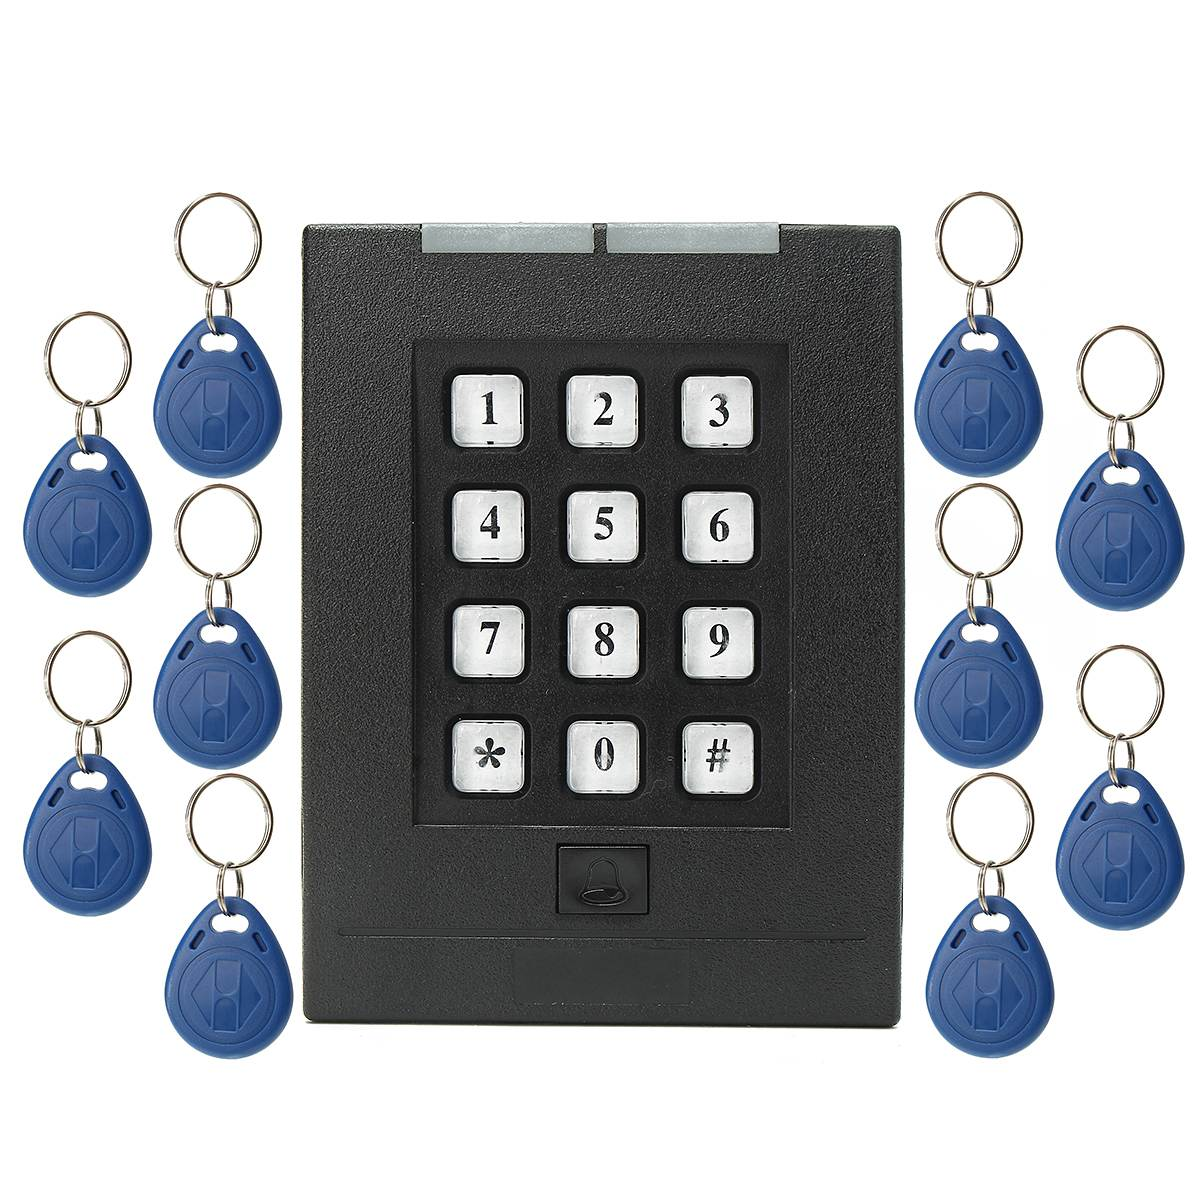 NEW Safurance Home Security Electronic Door Access Control Keypad Password Code Lock +10 RFID ID Card Keyfob ned high security electronic induction smart digit code keypad entry door lock with id reader right handle and card unlock